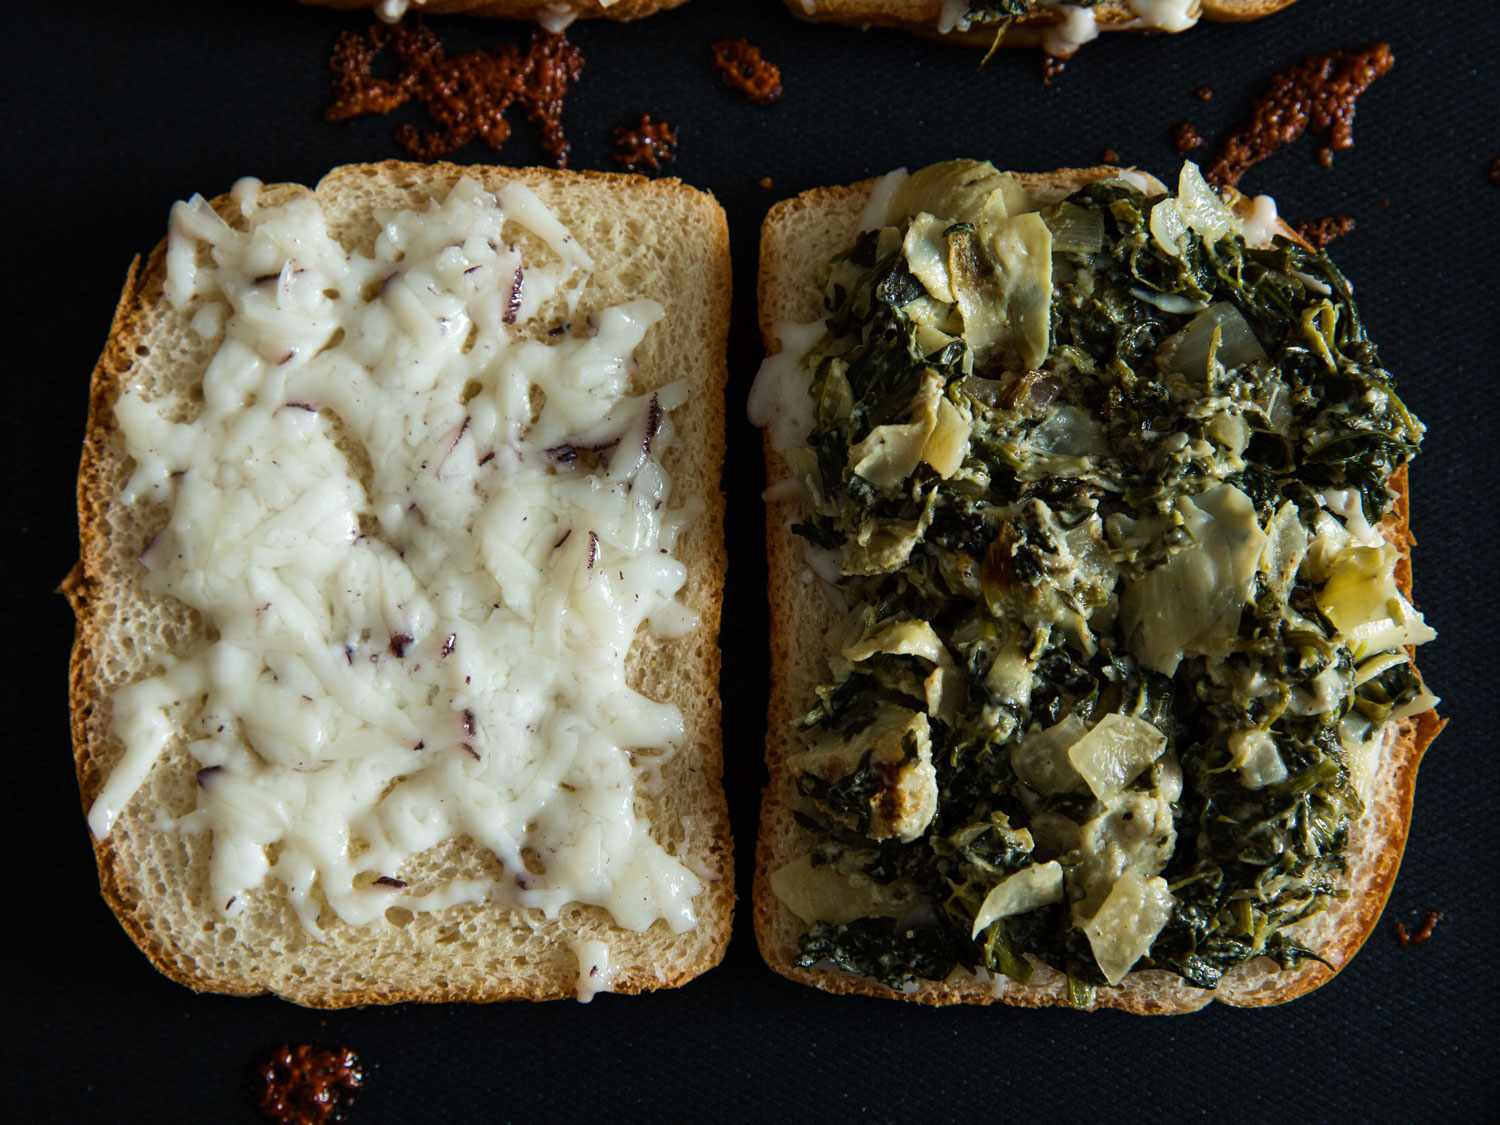 20160826-spinach-artichoke-grilled-cheese-vicky-wasik-1.jpg